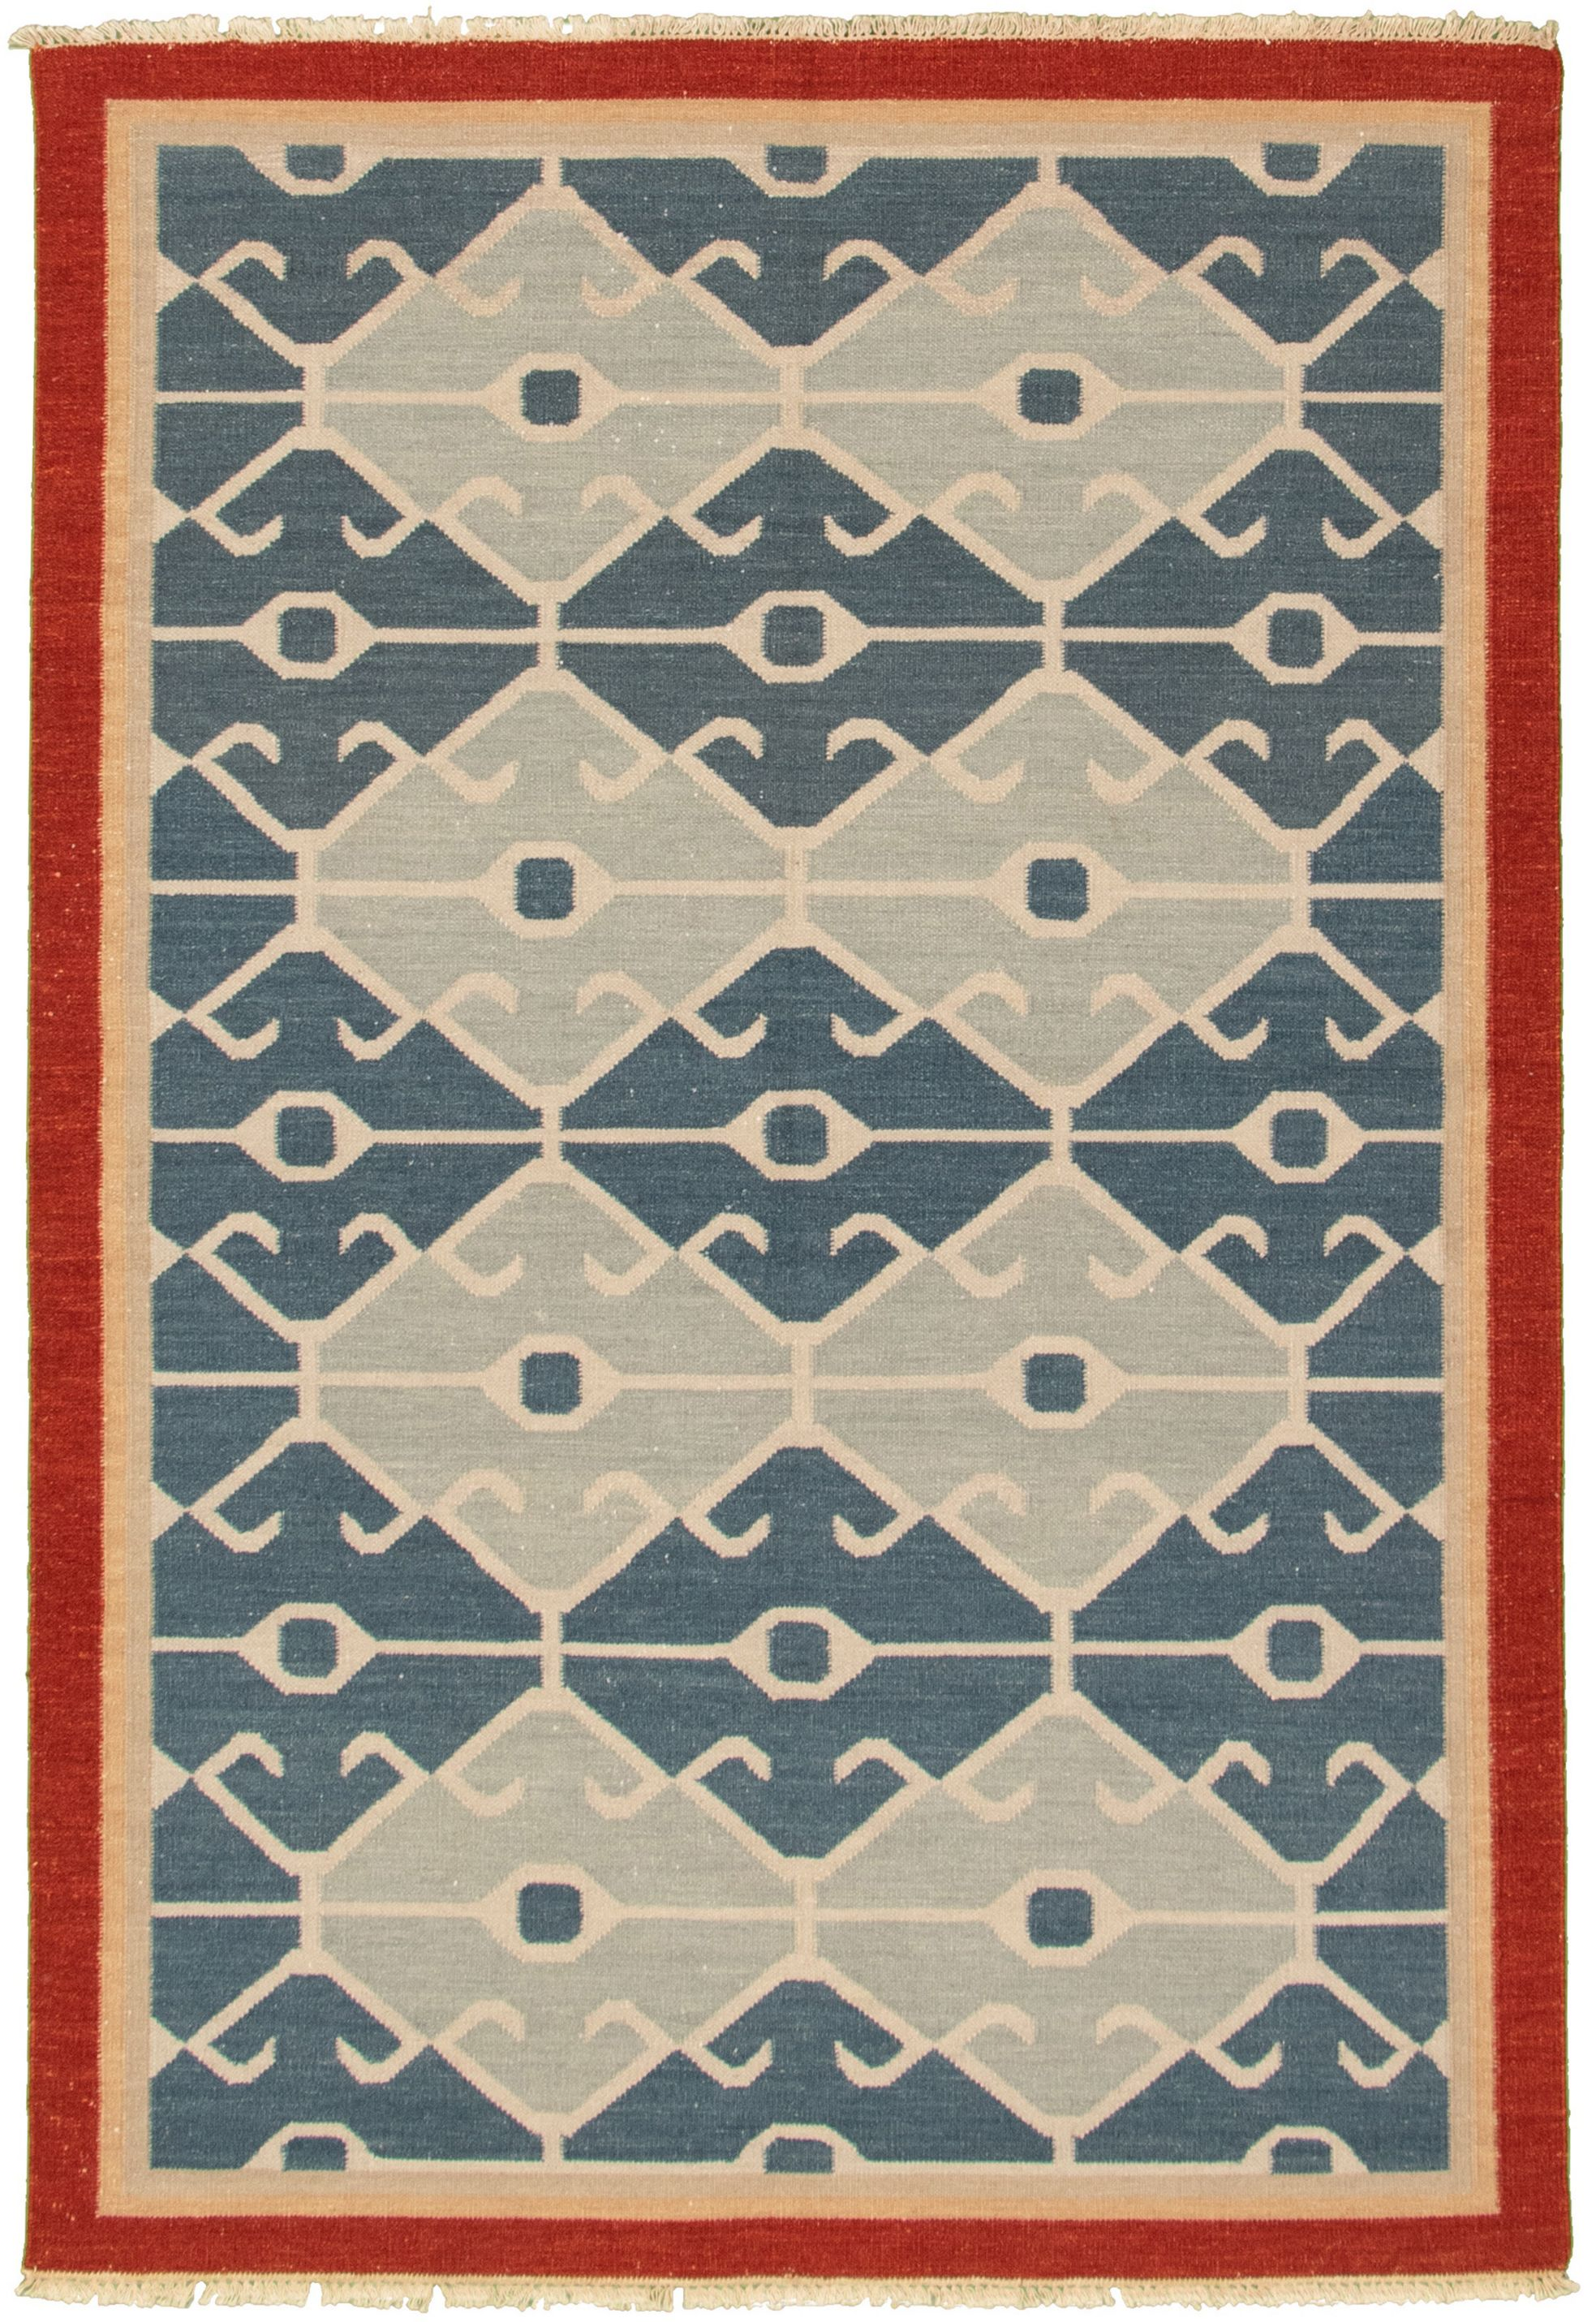 "Hand woven Bold and Colorful  Dark Blue Wool Kilim 5'3"" x 7'10"" Size: 5'3"" x 7'10"""